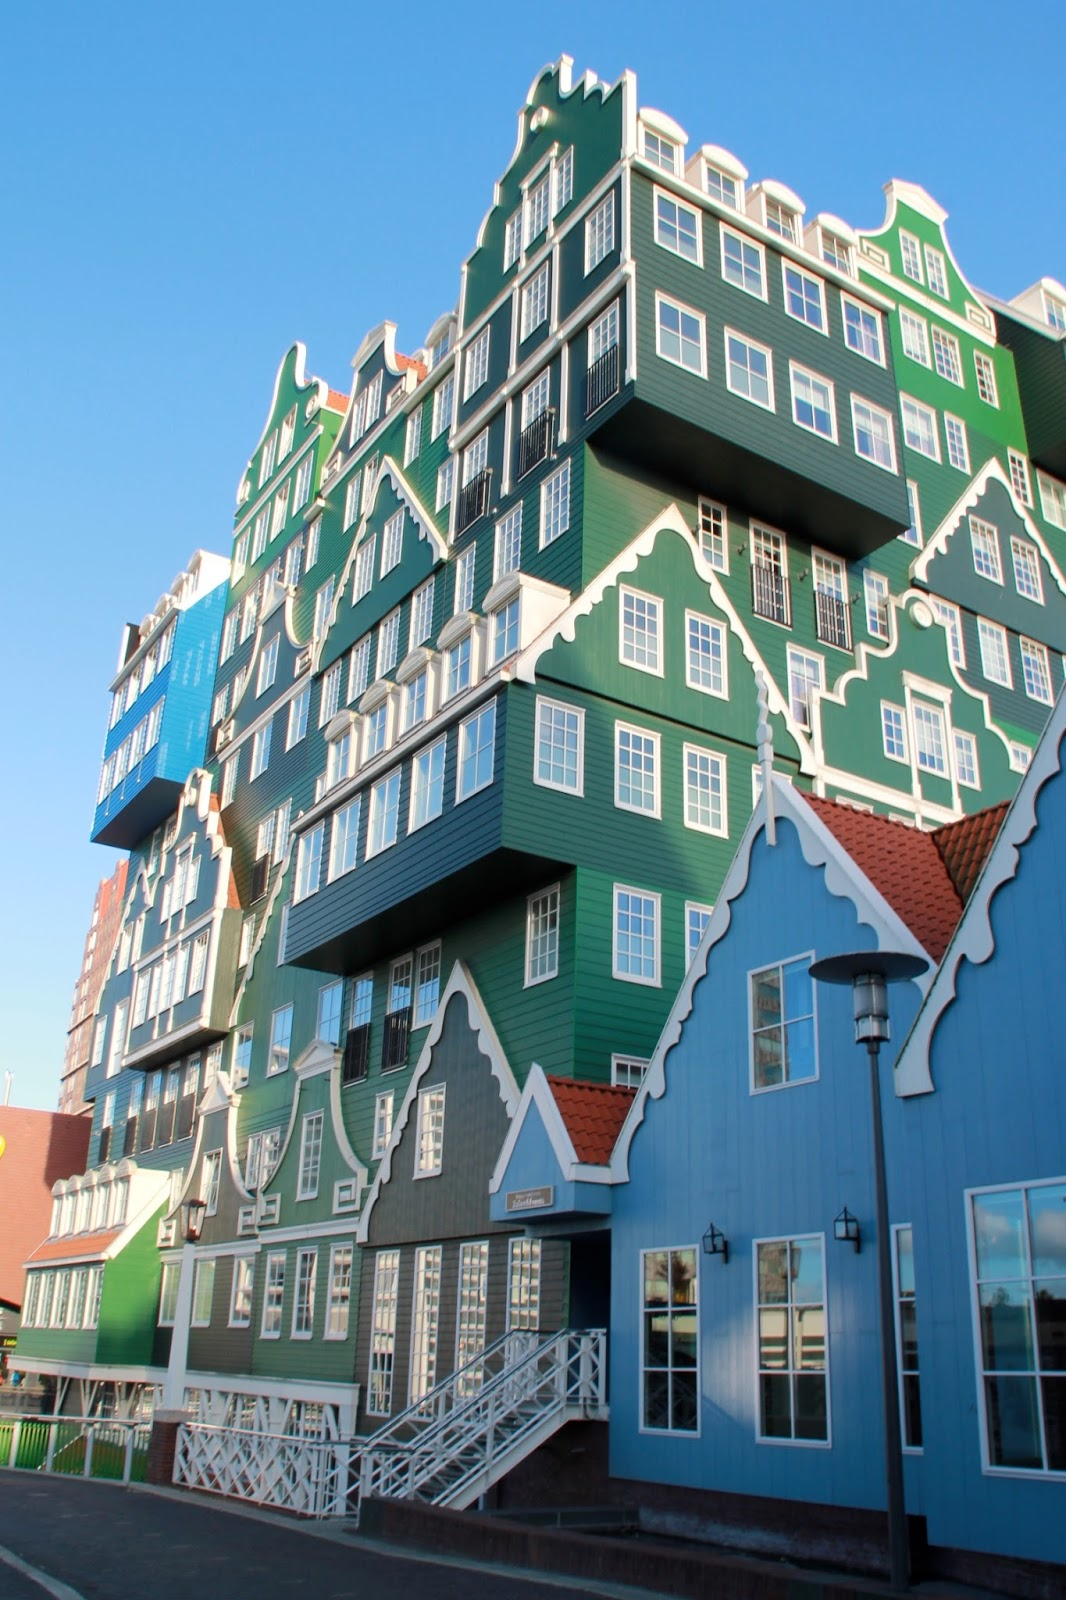 Zaandam, The Netherlands